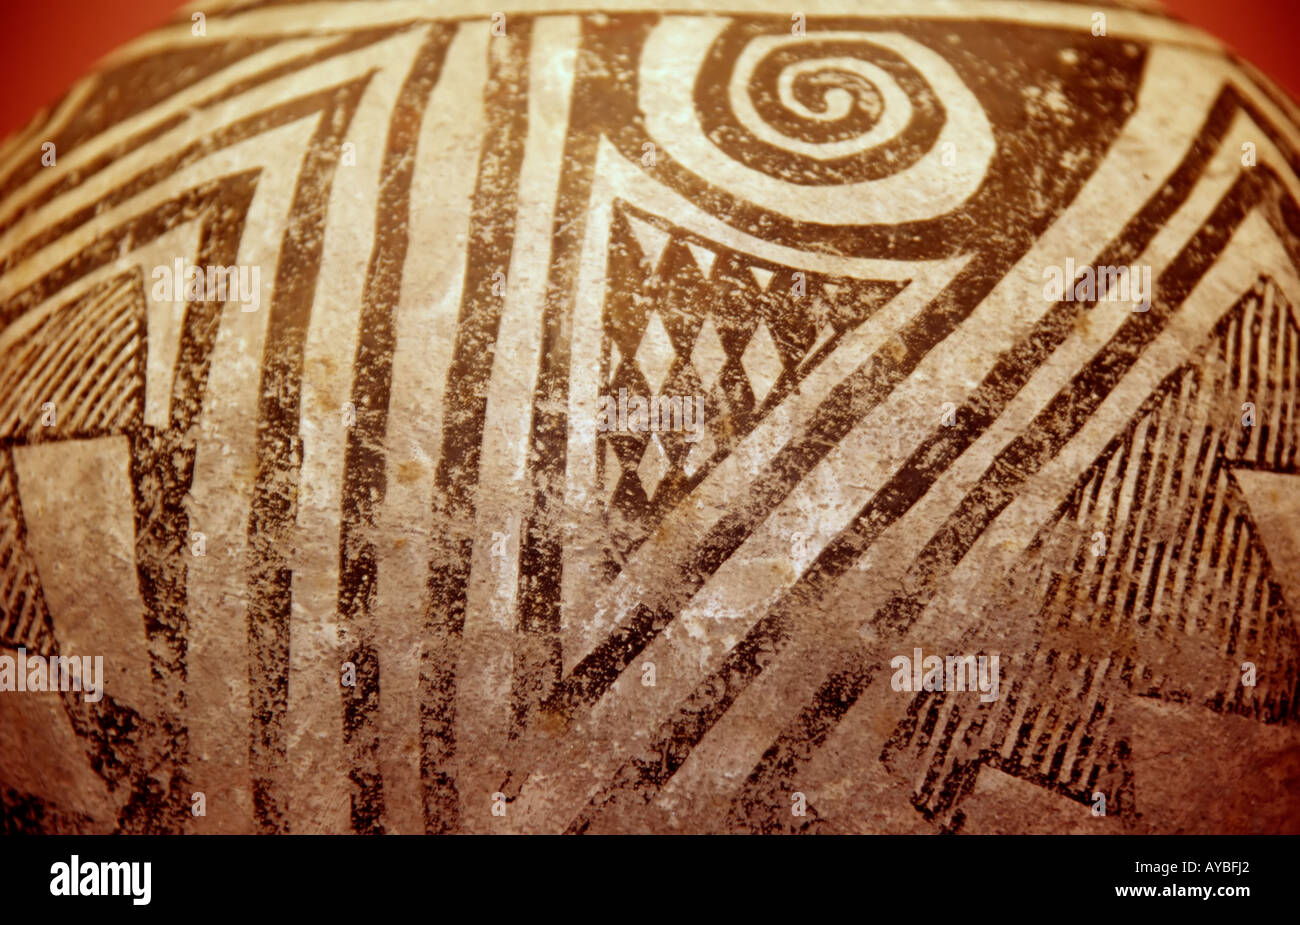 Anasazi Native-American Indian art, in the form of a geometrically  painted clay pot, at Gran Quivira Ruins, New Mexico. - Stock Image